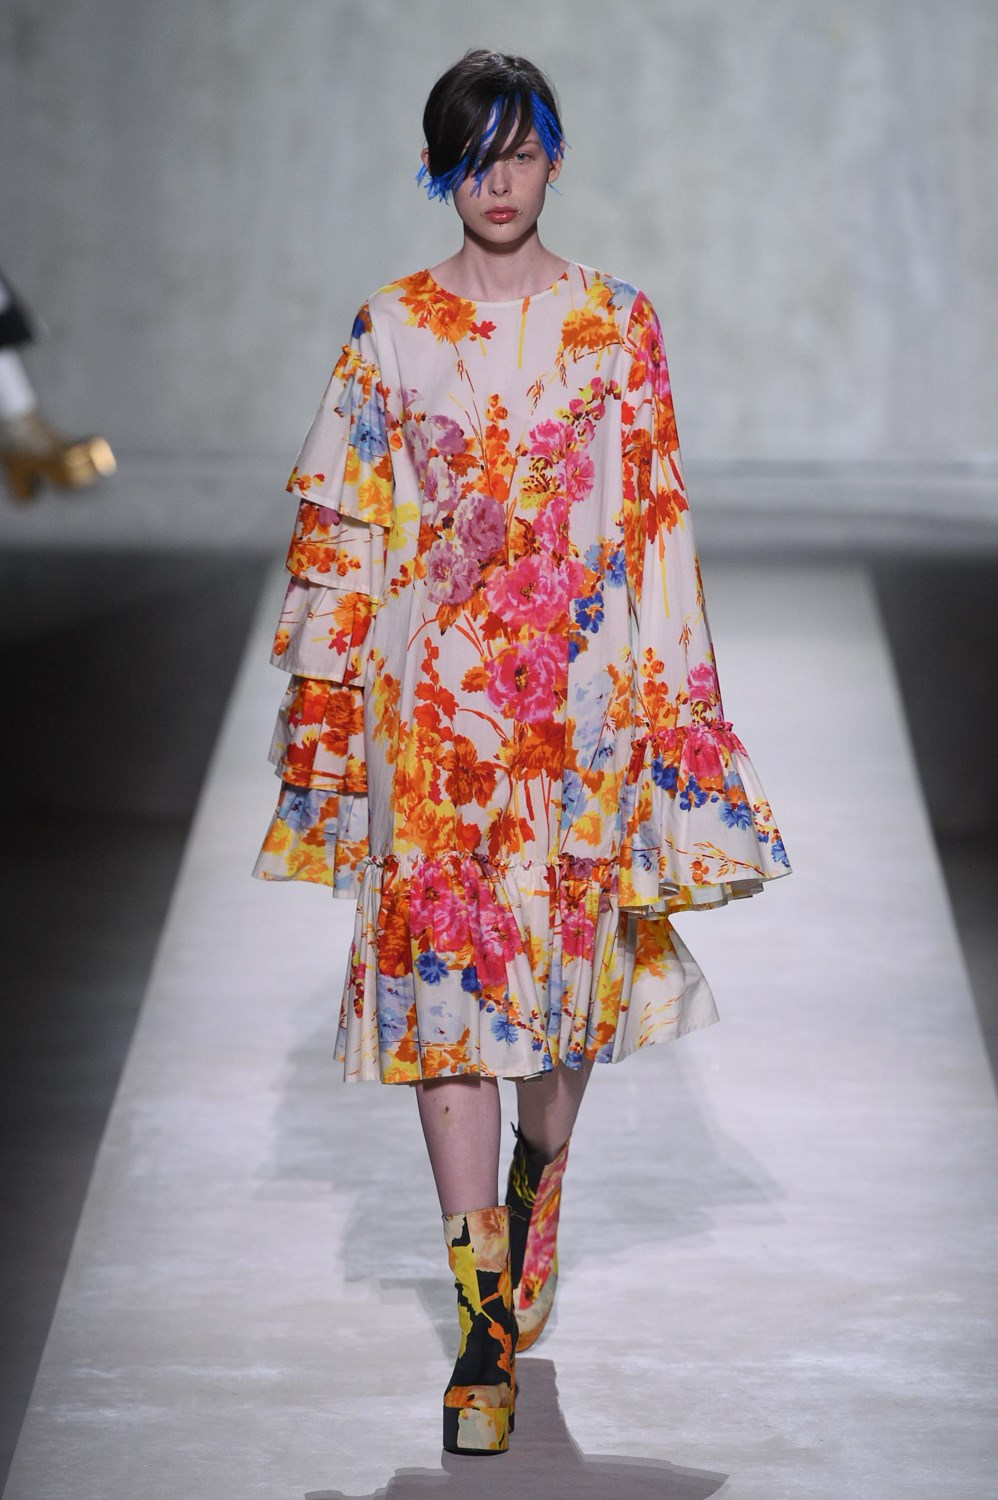 Dries Van Noten Spring 2020 Fashion Show